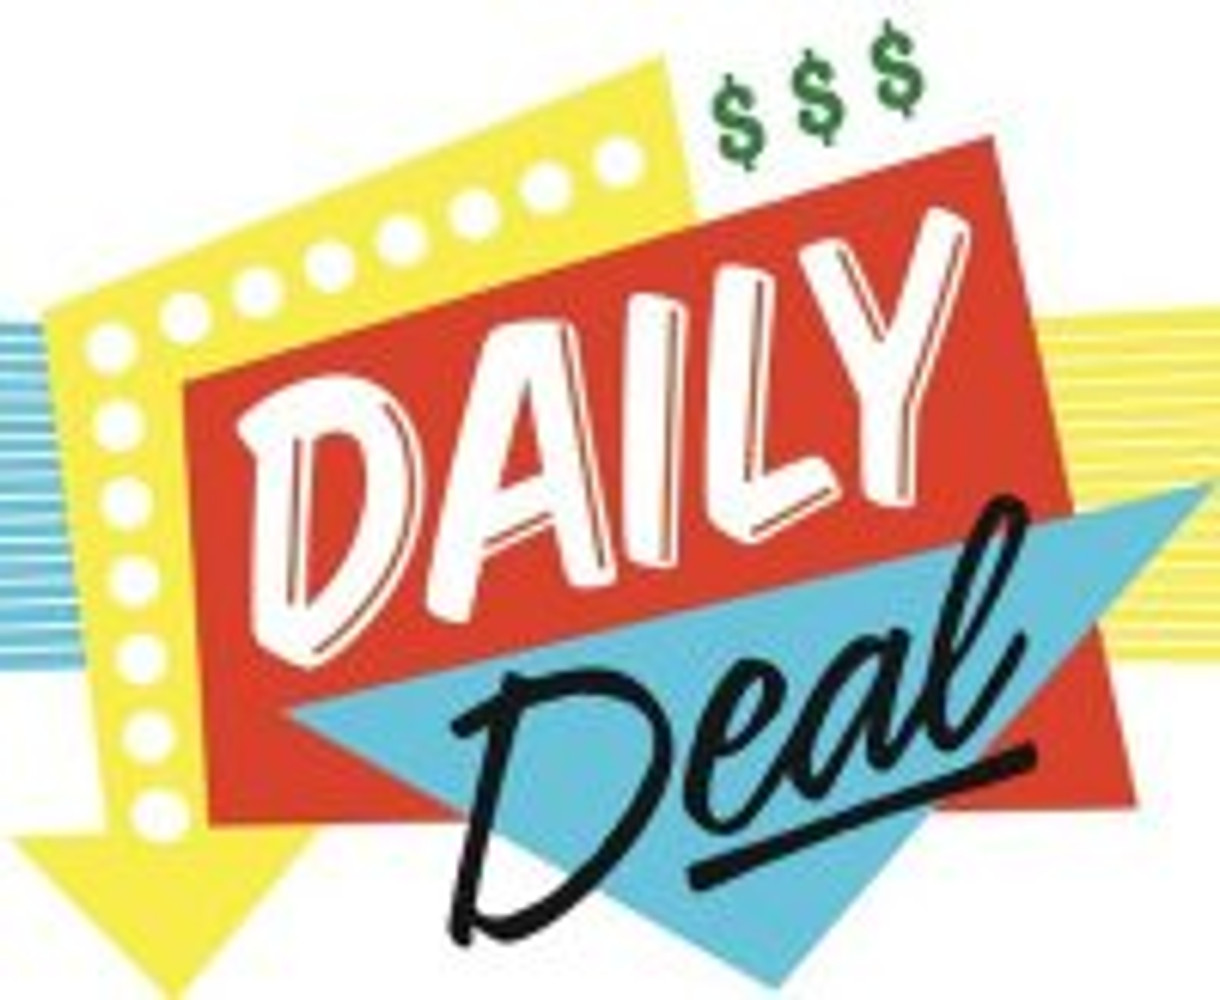 Daily deals!